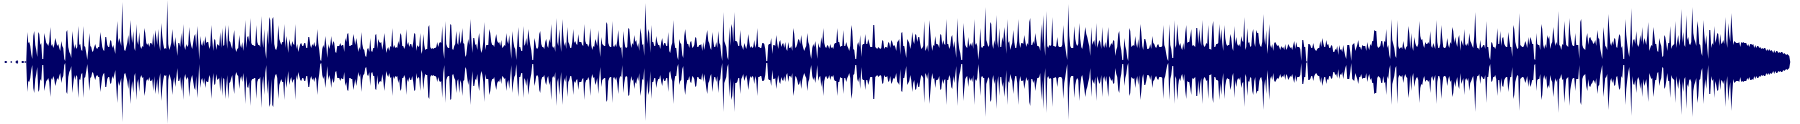 waveform of track #73727